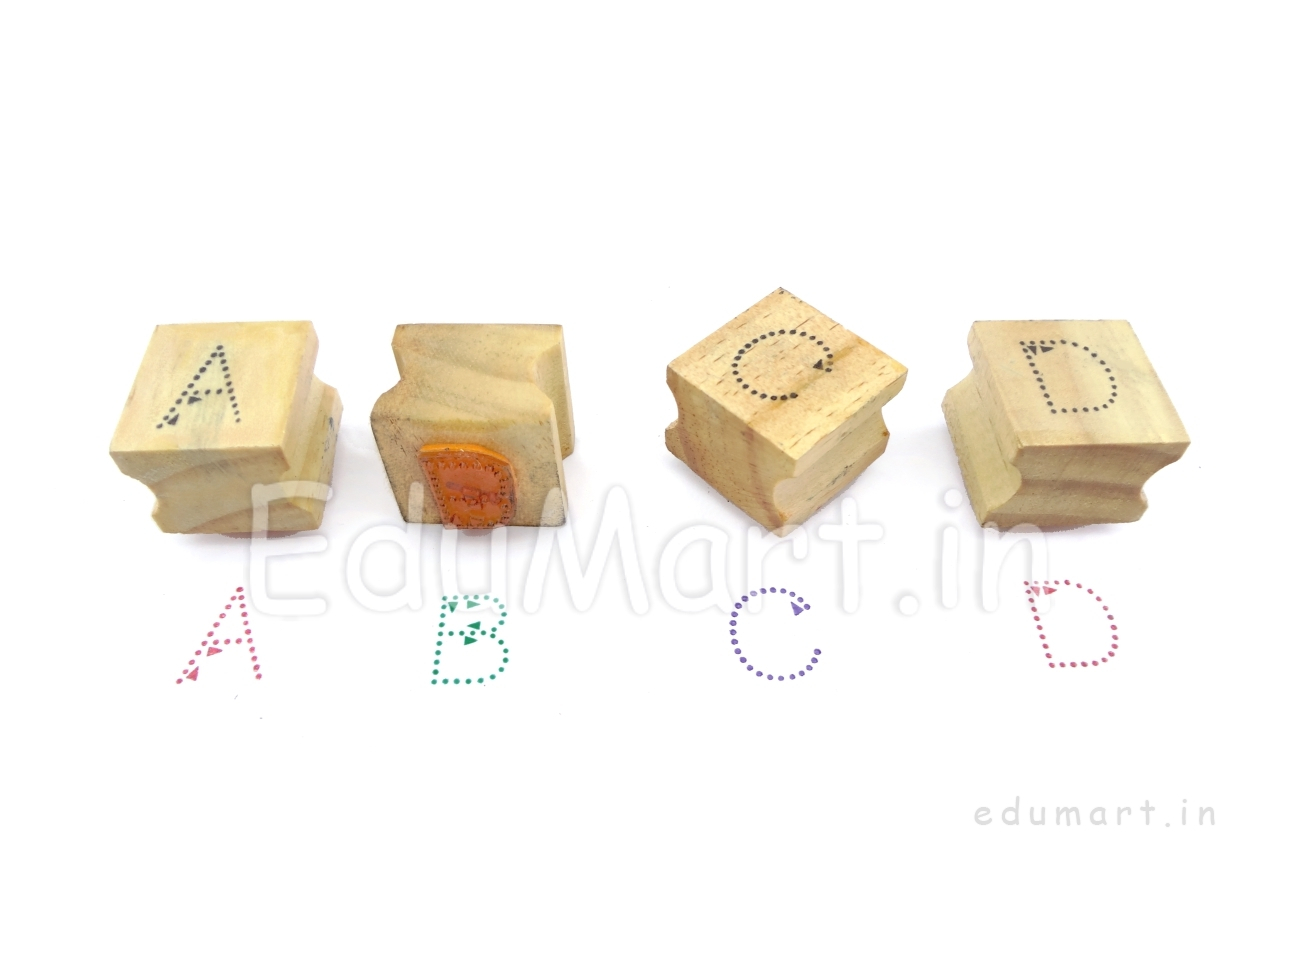 Product|Language Rubber Stamps|Upper Case Alphabet Rubber regarding Alphabet Tracing Stamps